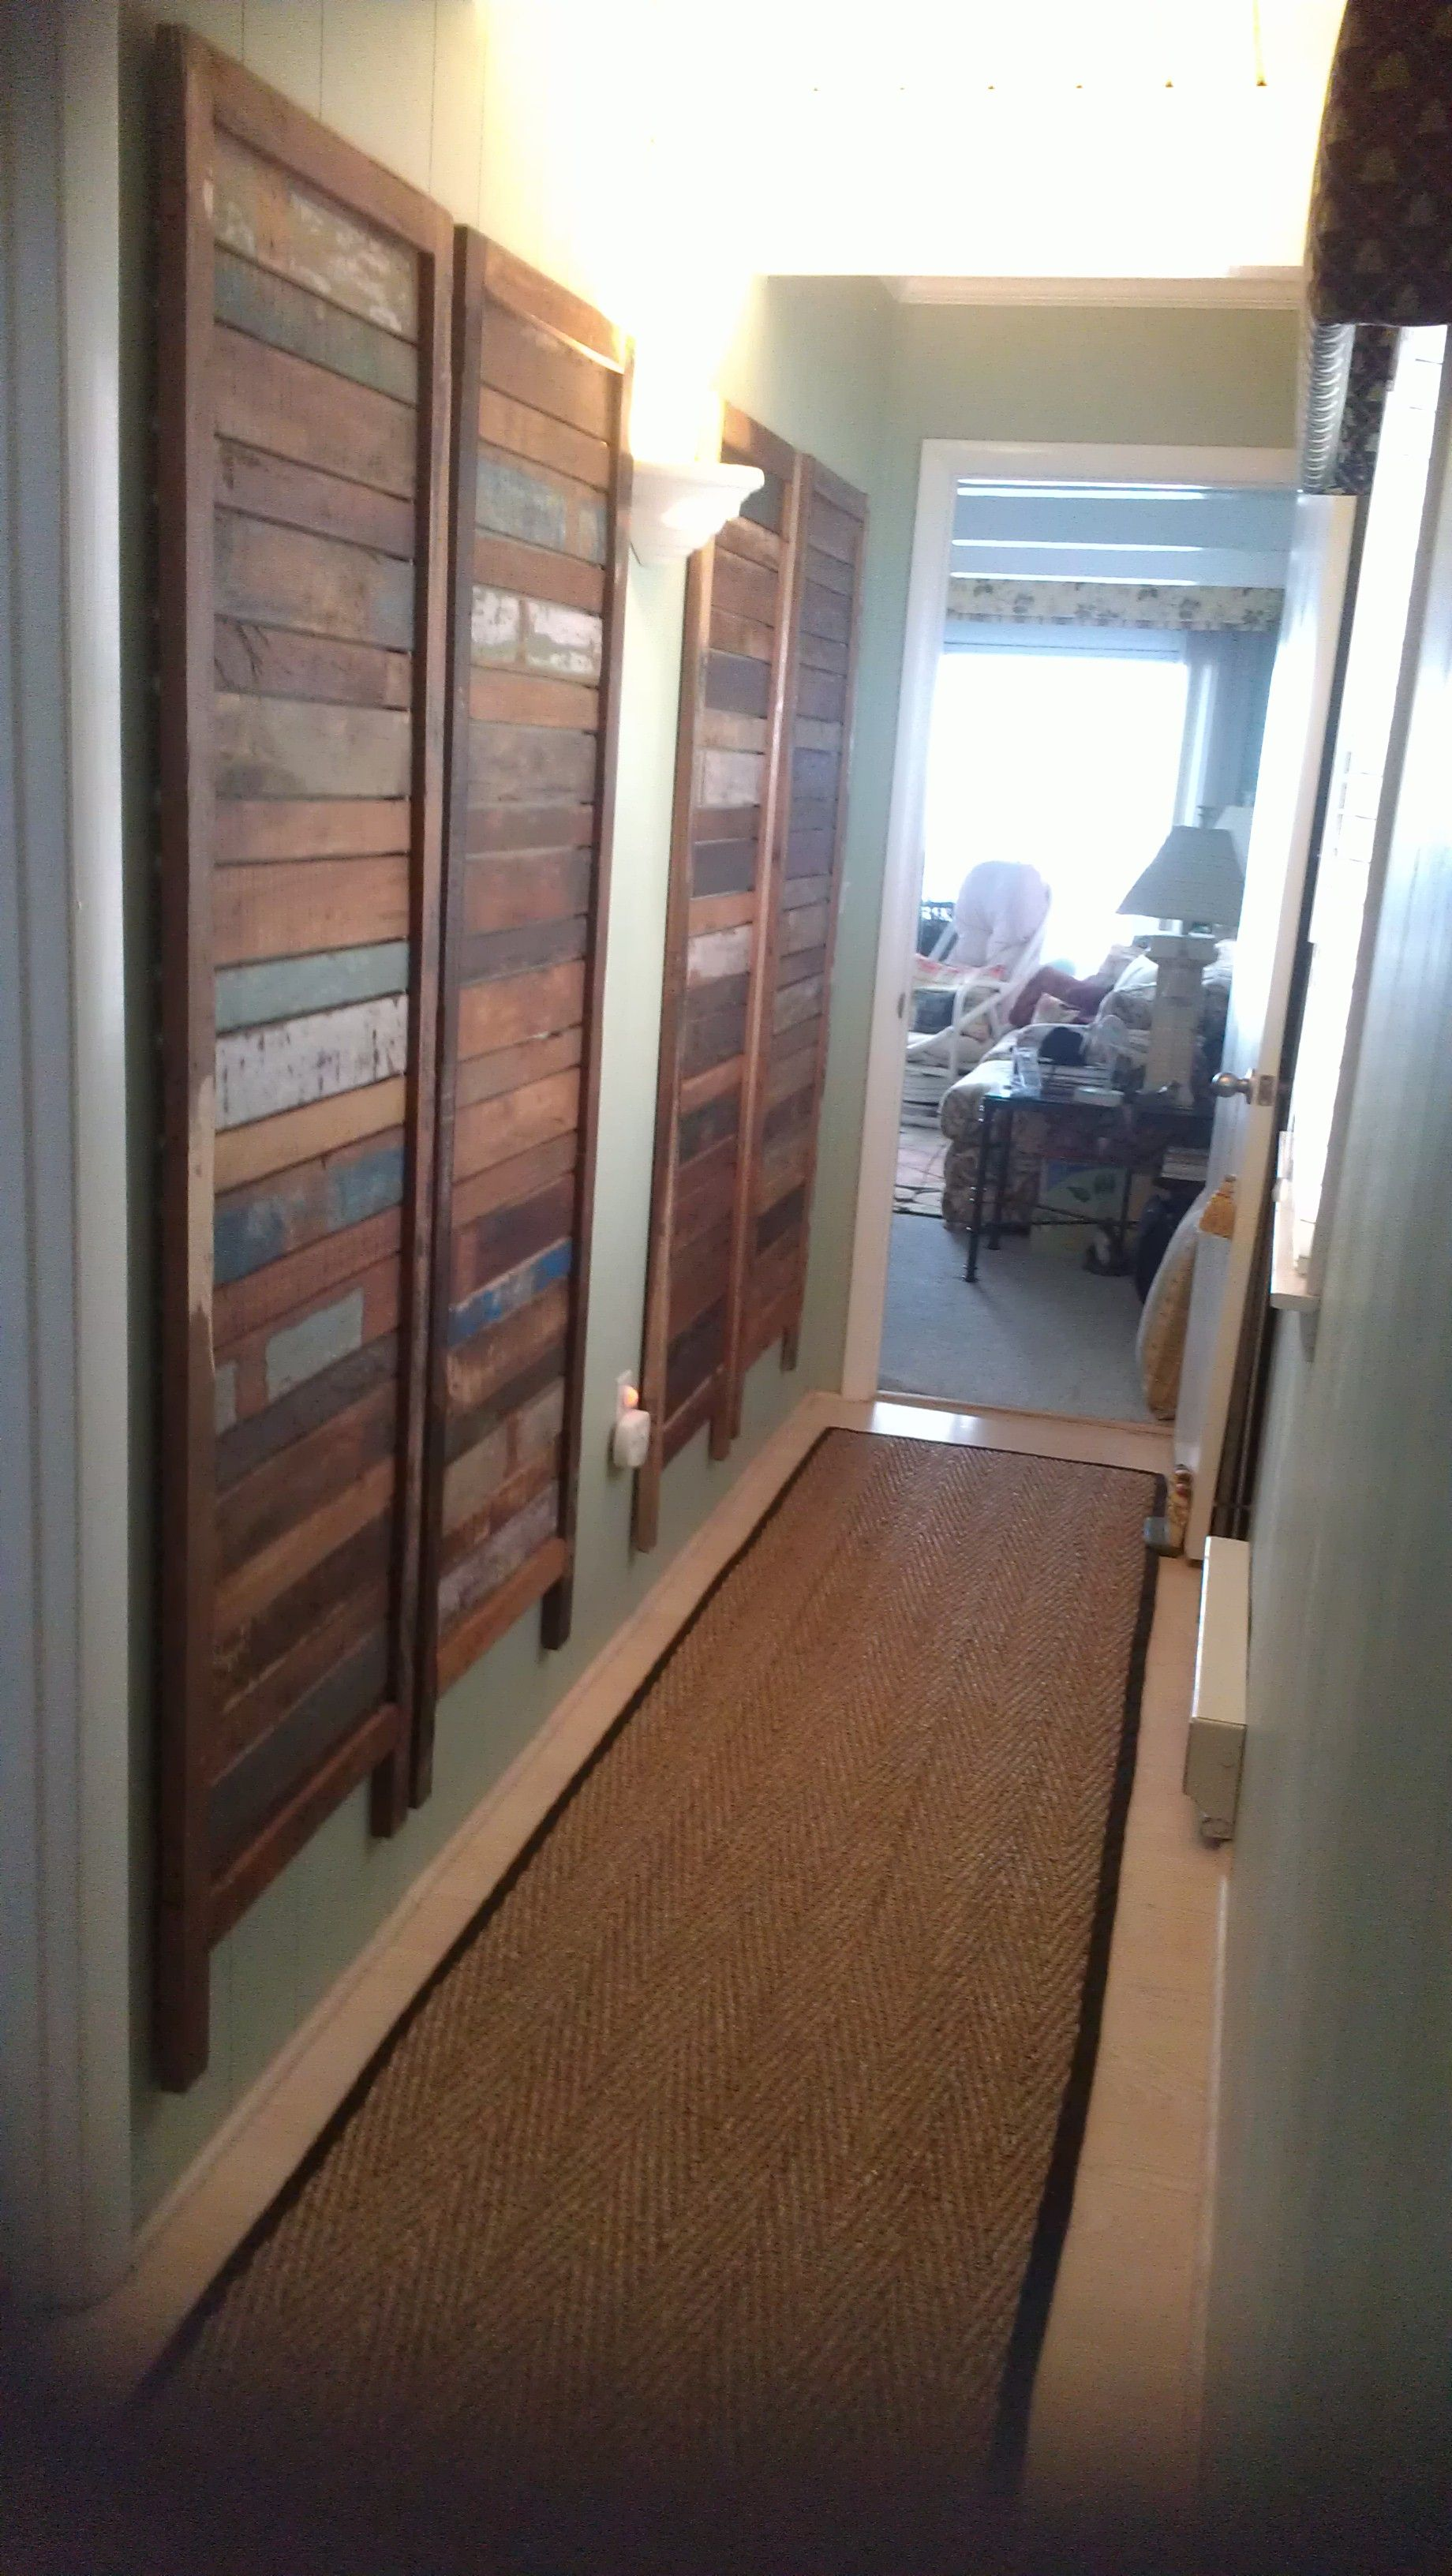 Hallway Dividers A Reclaimed Wood Room Divider Was Unassembled And Hung On Hallway